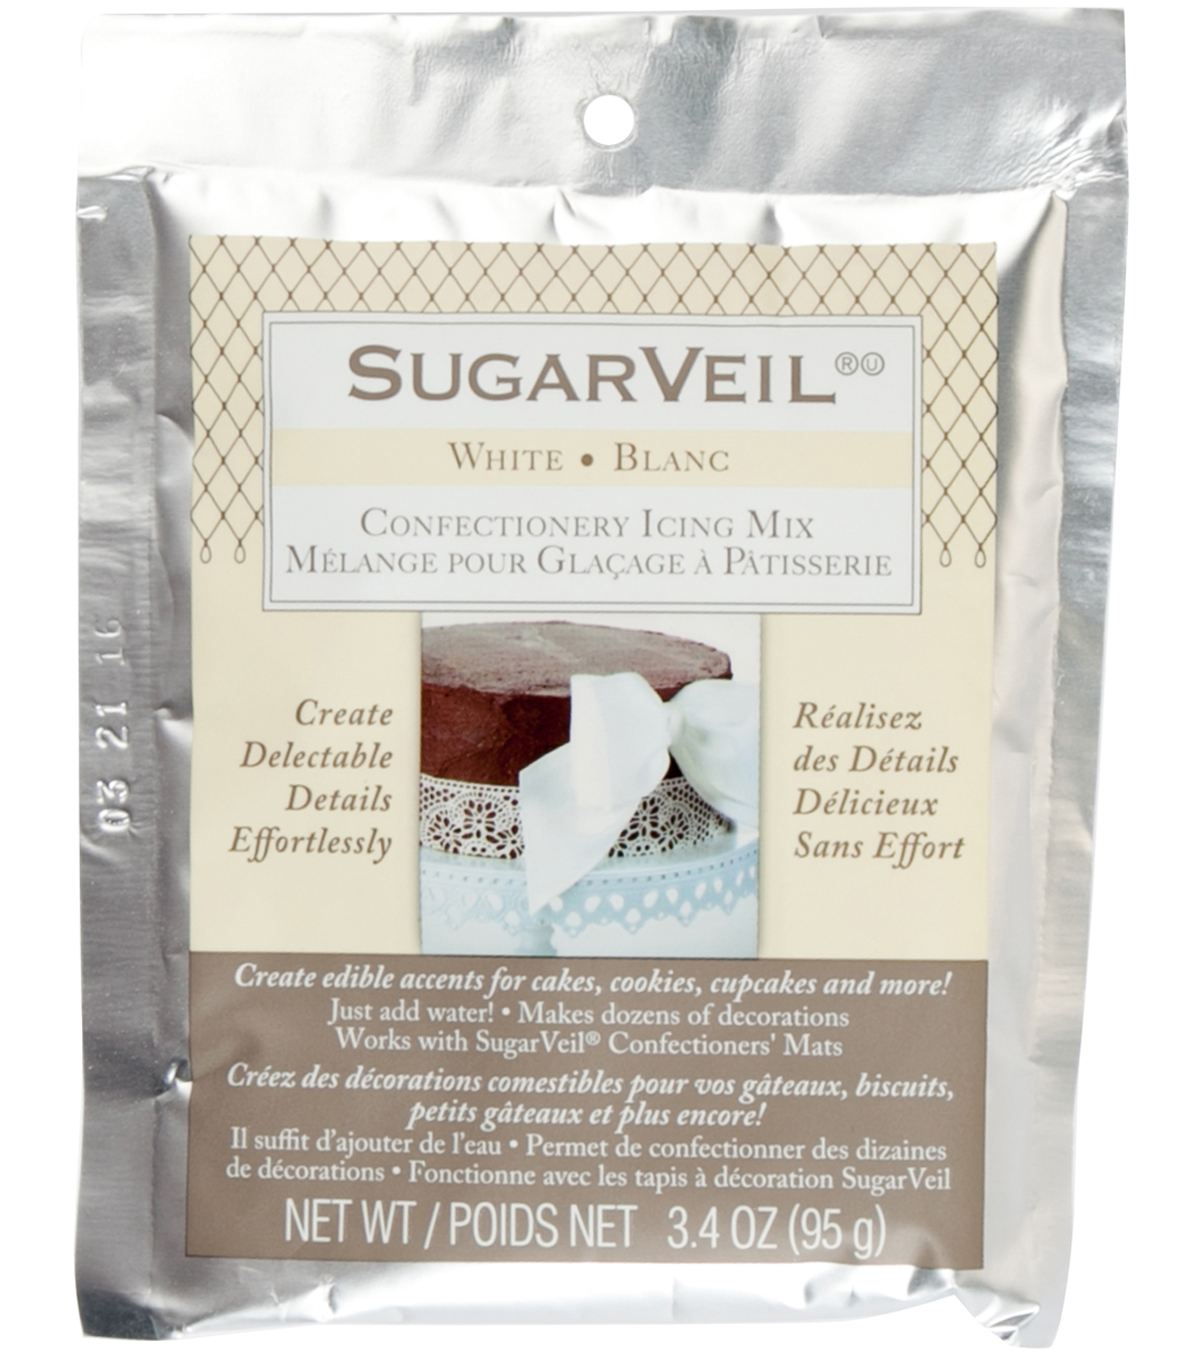 SugarVeil 3.4oz. Confectionery Icing Mix-White